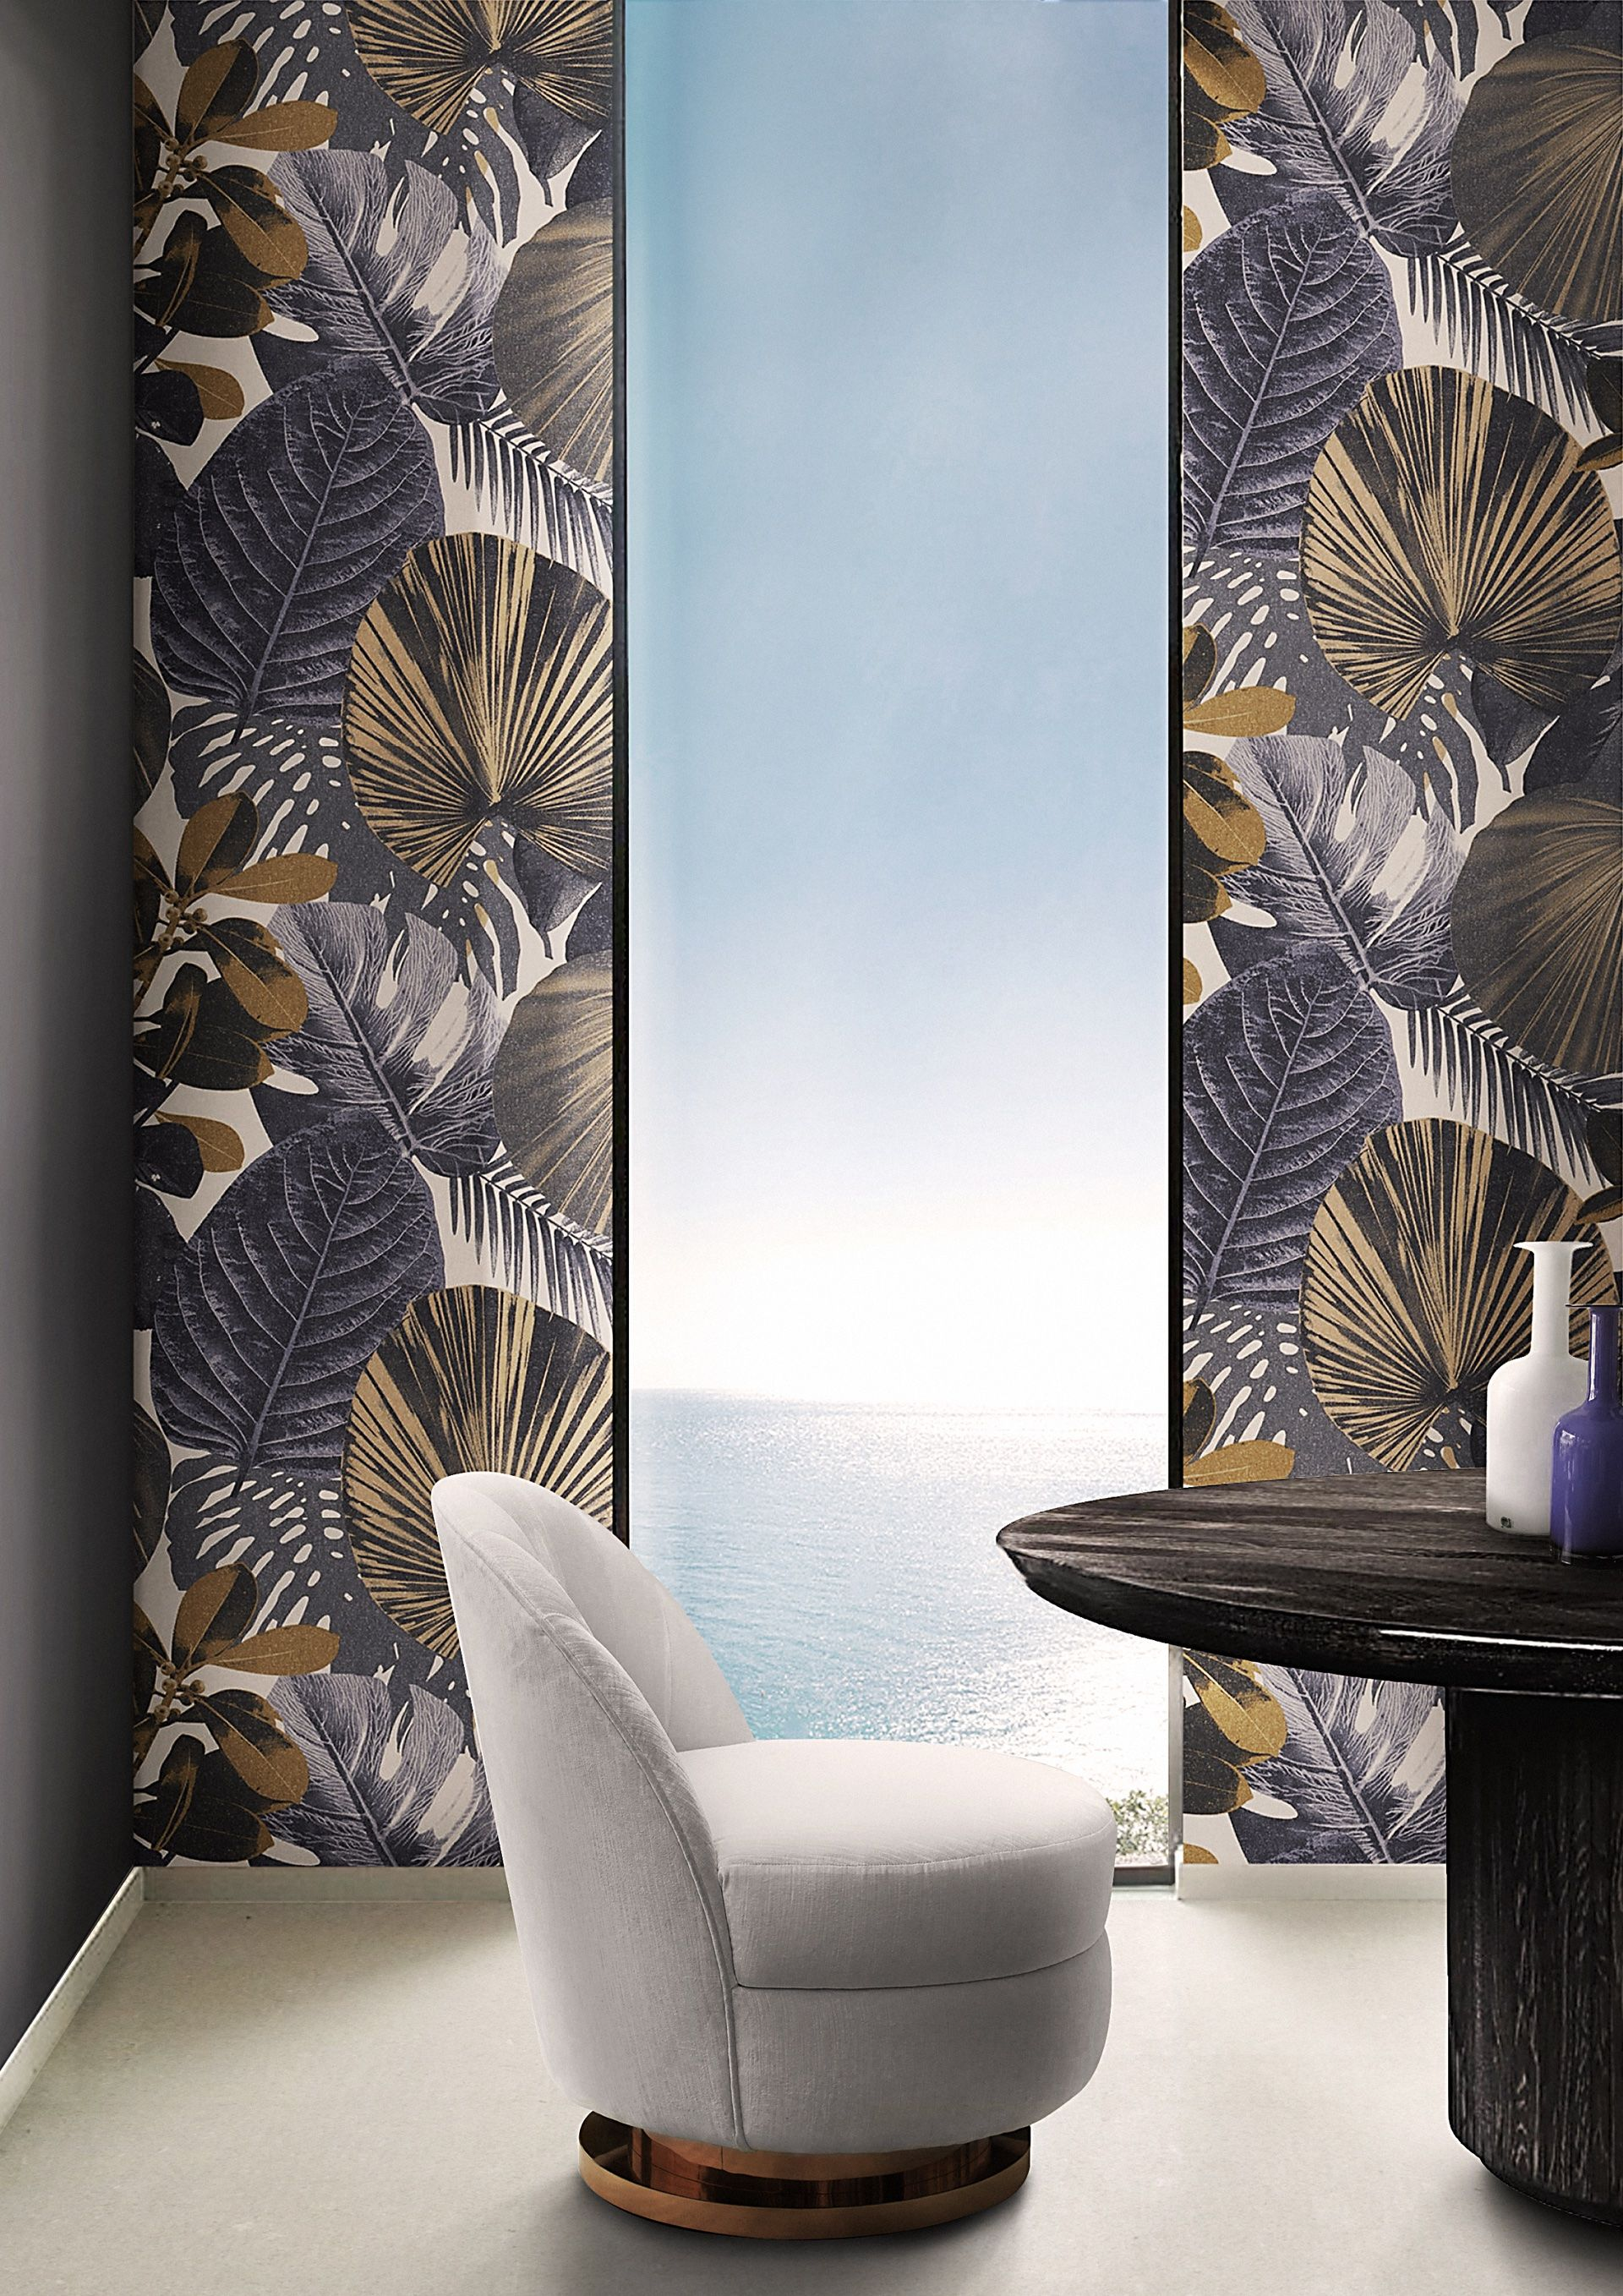 Before starting your new interior design project look at these ...